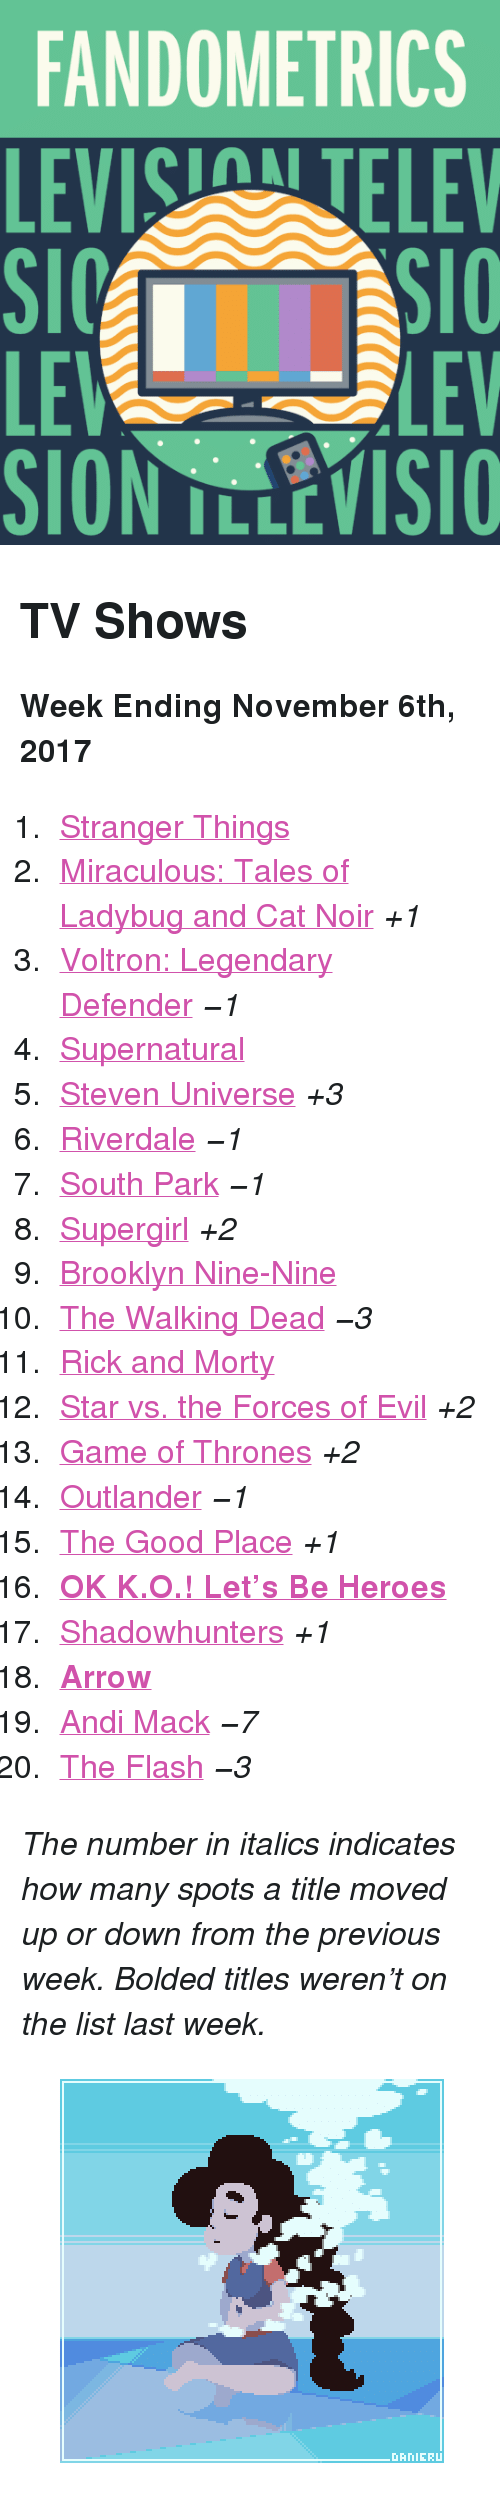 """Levis: FANDOMETRICS  LEVIS TELEV  LE  SION TLLEVISIO  LEV <h2>TV Shows</h2><p><b>Week Ending November 6th, 2017</b></p><ol><li><a href=""""http://tumblr.co/6130D6Oiy"""">Stranger Things</a></li><li><a href=""""http://tumblr.co/6131D6OiJ"""">Miraculous: Tales of Ladybug and Cat Noir</a><i>+1</i></li><li><a href=""""http://tumblr.co/6132D6OiK"""">Voltron: Legendary Defender</a><i><i>−1</i></i></li><li><a href=""""http://tumblr.co/6133D6Oiz"""">Supernatural</a></li><li><a href=""""http://tumblr.co/6135D6Oi3"""">Steven Universe</a><i>+3</i></li><li><a href=""""http://tumblr.co/6136D6OiO"""">Riverdale</a><i><i>−1</i></i></li><li><a href=""""http://tumblr.co/6137D6OiP"""">South Park</a><i><i>−1</i></i></li><li><a href=""""http://tumblr.co/6138D6Oiu"""">Supergirl</a><i>+2</i></li><li><a href=""""http://tumblr.co/6139D6OiR"""">Brooklyn Nine-Nine</a></li><li><a href=""""http://tumblr.co/6130D6Oir"""">The Walking Dead</a><i><i>−3</i></i></li><li><a href=""""http://tumblr.co/6131D6OiT"""">Rick and Morty</a></li><li><a href=""""http://tumblr.co/6132D6Oip"""">Star vs. the Forces of Evil</a><i>+2</i></li><li><a href=""""http://tumblr.co/6133D6OiV"""">Game of Thrones</a><i>+2</i></li><li><a href=""""http://tumblr.co/6134D6Oin"""">Outlander</a><i><i>−1</i></i></li><li><a href=""""http://tumblr.co/6135D6OiX"""">The Good Place</a><i>+1</i></li><li><a href=""""http://tumblr.co/6136D6Oik""""><b>OK K.O.! Let&rsquo;s Be Heroes</b></a></li><li><a href=""""http://tumblr.co/6137D6OiZ"""">Shadowhunters</a><i>+1</i></li><li><a href=""""http://tumblr.co/6138D6Oiw""""><b>Arrow</b></a></li><li><a href=""""http://tumblr.co/6139D6Oib"""">Andi Mack</a><i><i>−7</i></i></li><li><a href=""""http://tumblr.co/6130D6Oij"""">The Flash</a><i><i>−3</i></i></li></ol><p><i>The number in italics indicates how many spots a title moved up or down from the previous week. Bolded titles weren't on the list last week.</i></p><figure class=""""tmblr-full pinned-target"""" data-orig-height=""""281"""" data-orig-width=""""500"""" data-tumblr-attribution=""""desudanieru:-mSoQ7ymXmN7sPhlDSvWhA:Z_-hCo2BUA9bD""""><img src=""""https://78.media.tumblr.com/8402c2075dd85"""